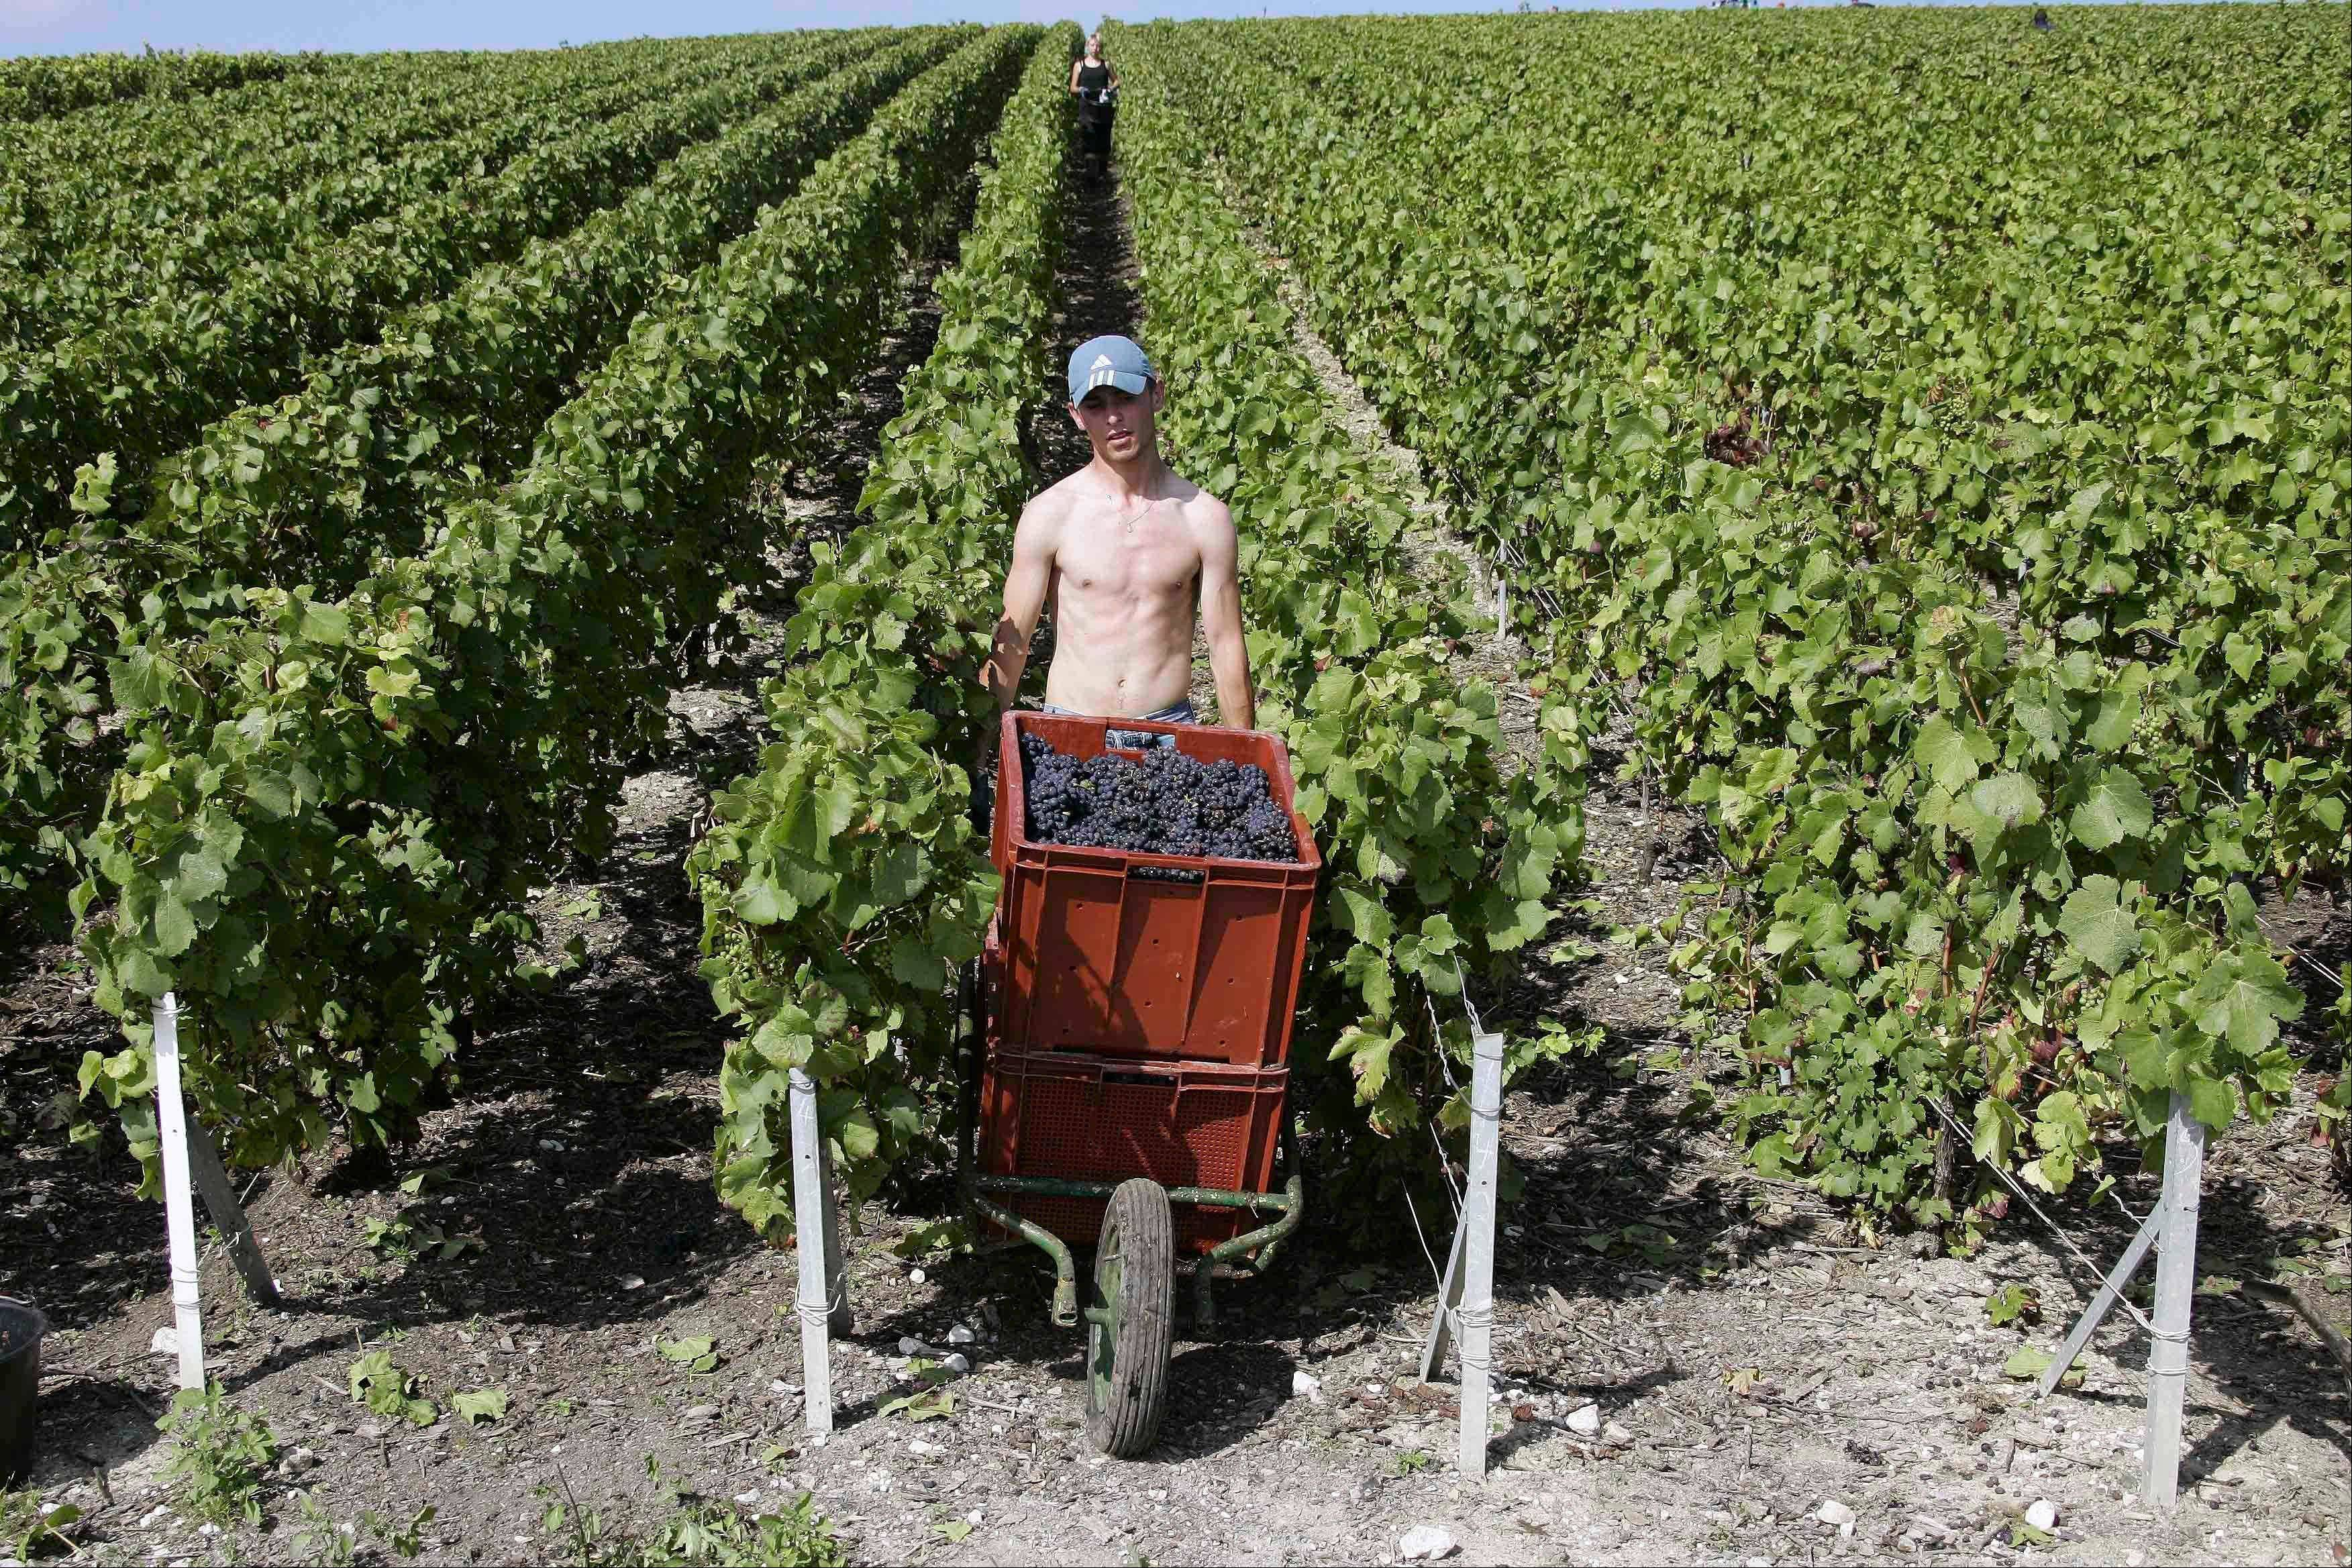 A worker uses a wheelbarrow to carry boxes of Pinot Noir grapes during the grape harvest of Roederer Champagne in Ay, in the Champagne production area of Epernay, near Reims, eastern France. Europeans are finding fewer reasons to pop open a bottle of Champagne as another year of economic troubles and high unemployment saps the region's joie de vivre, latest industry figures show.